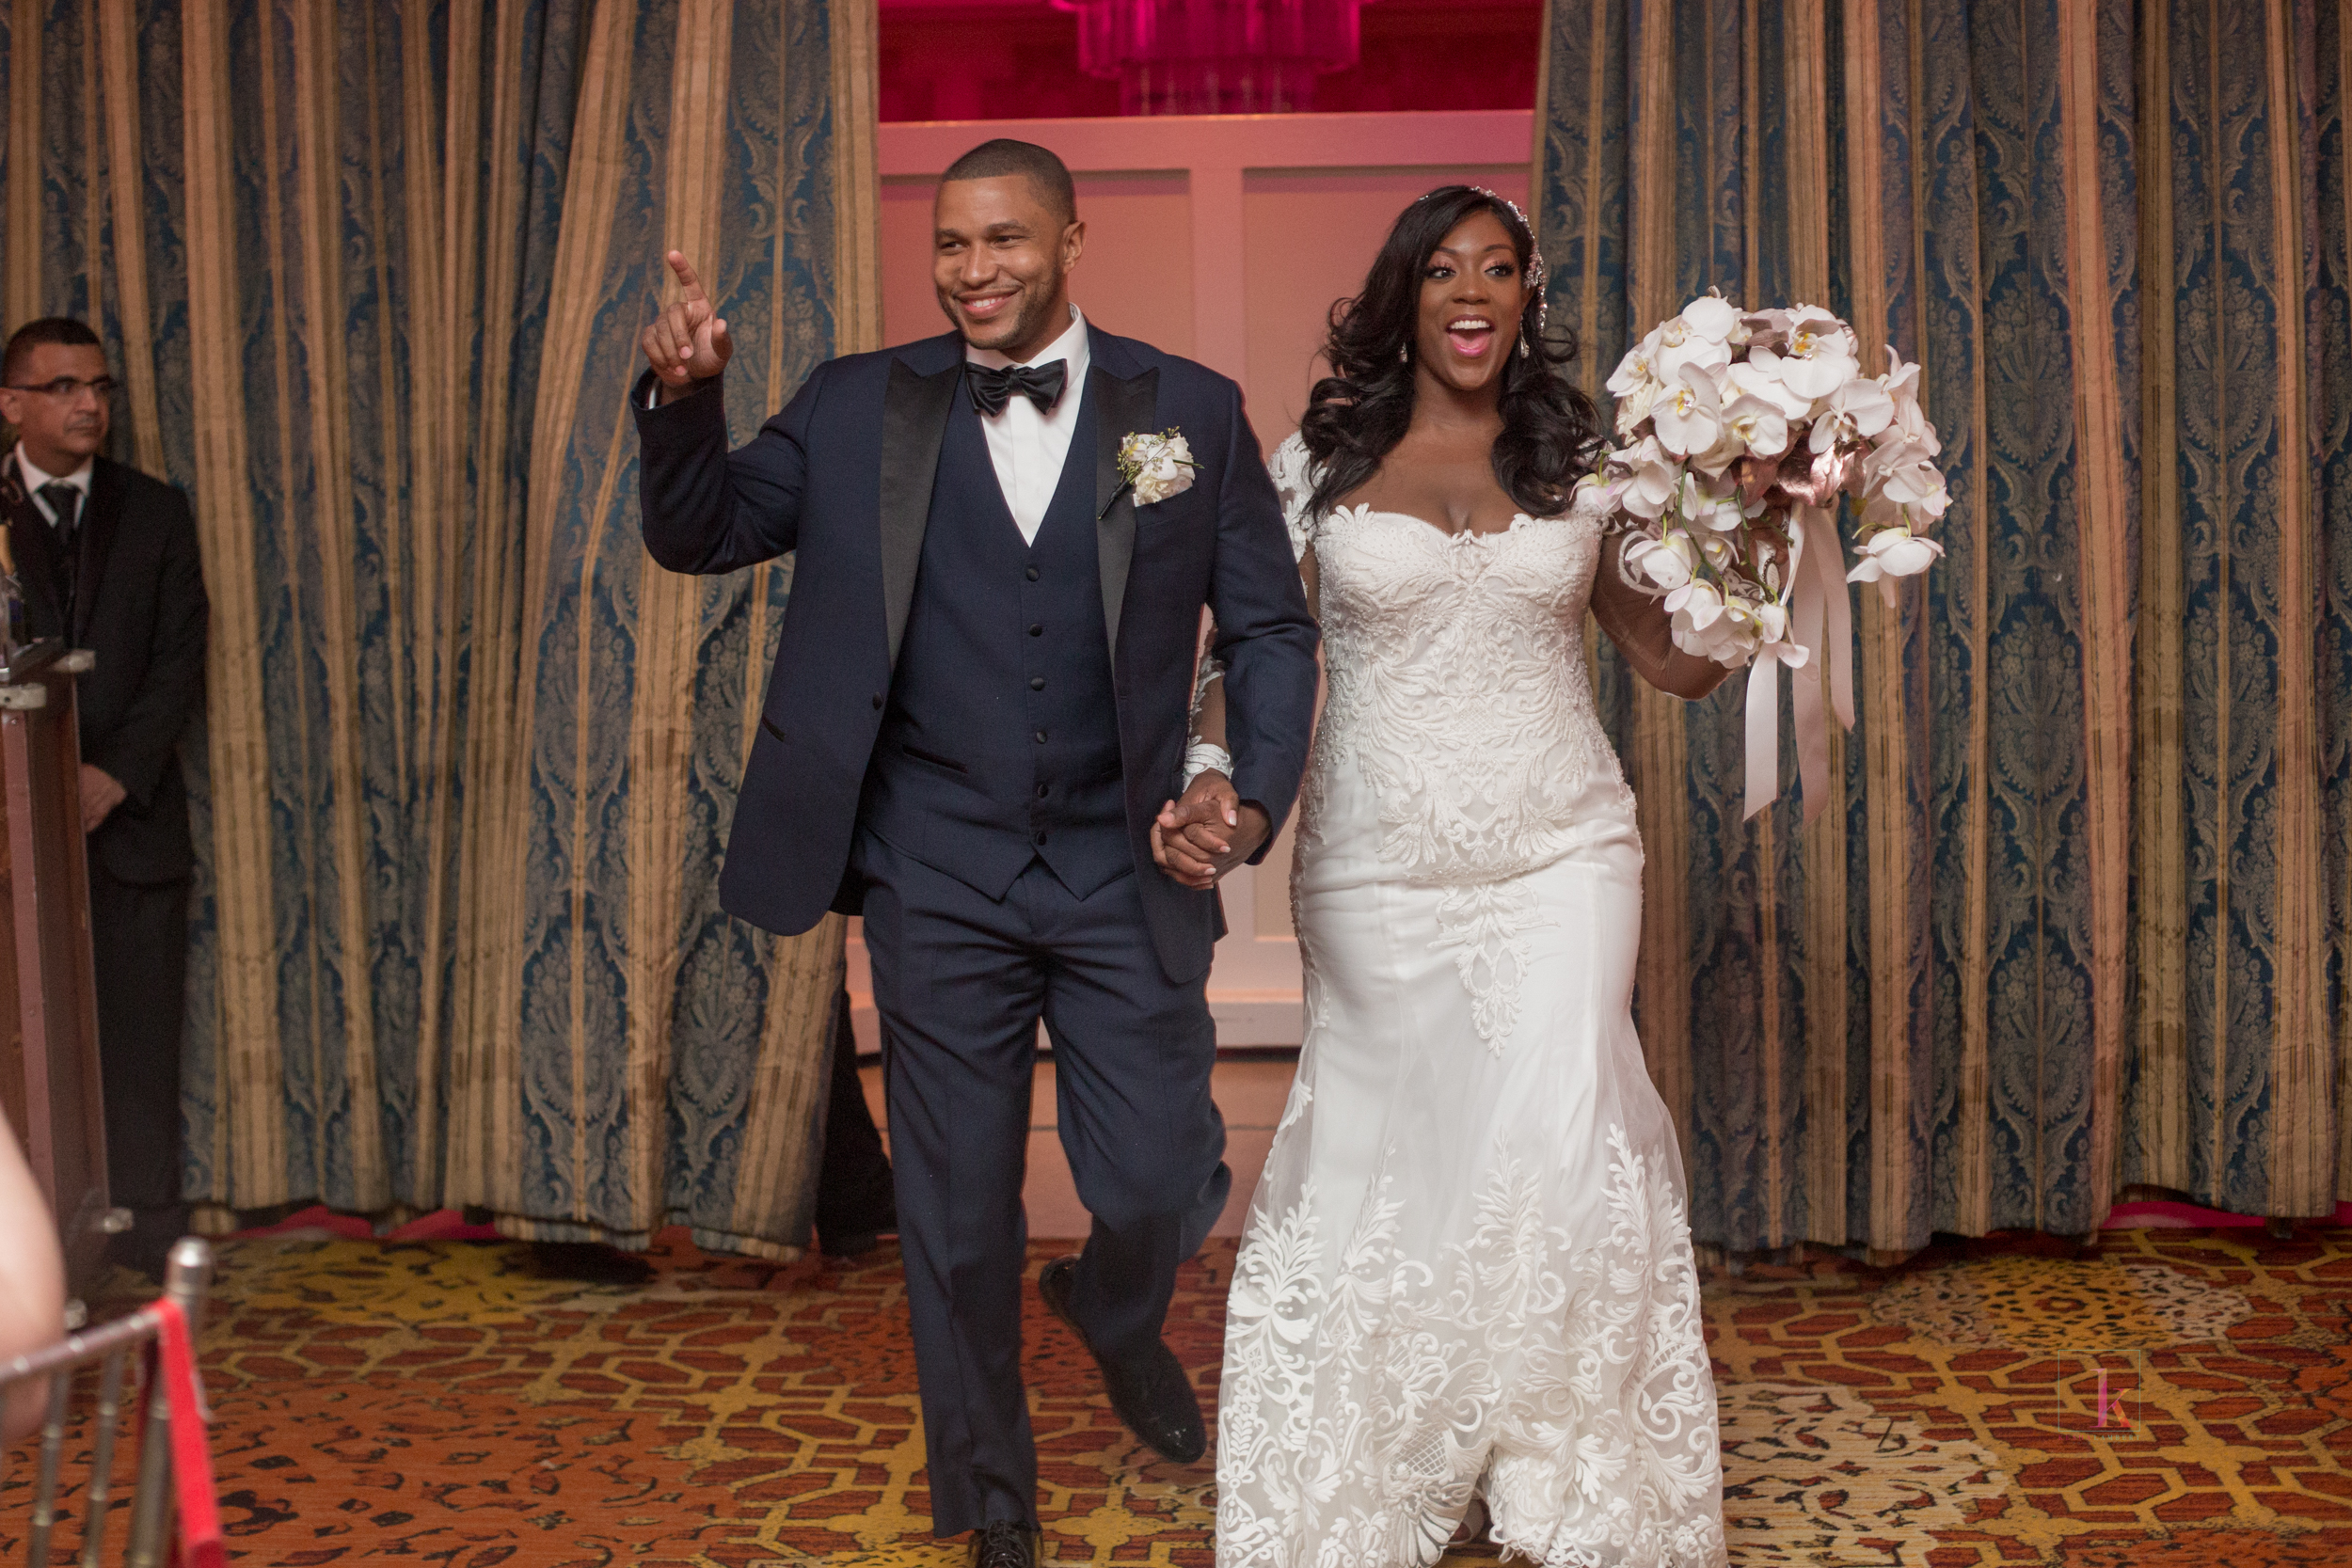 Dr. Marcus Bright and Dominique Sharpton's wedding. October 2017. (Credit: Kesha Lambert / Kesha Lambert Photography)